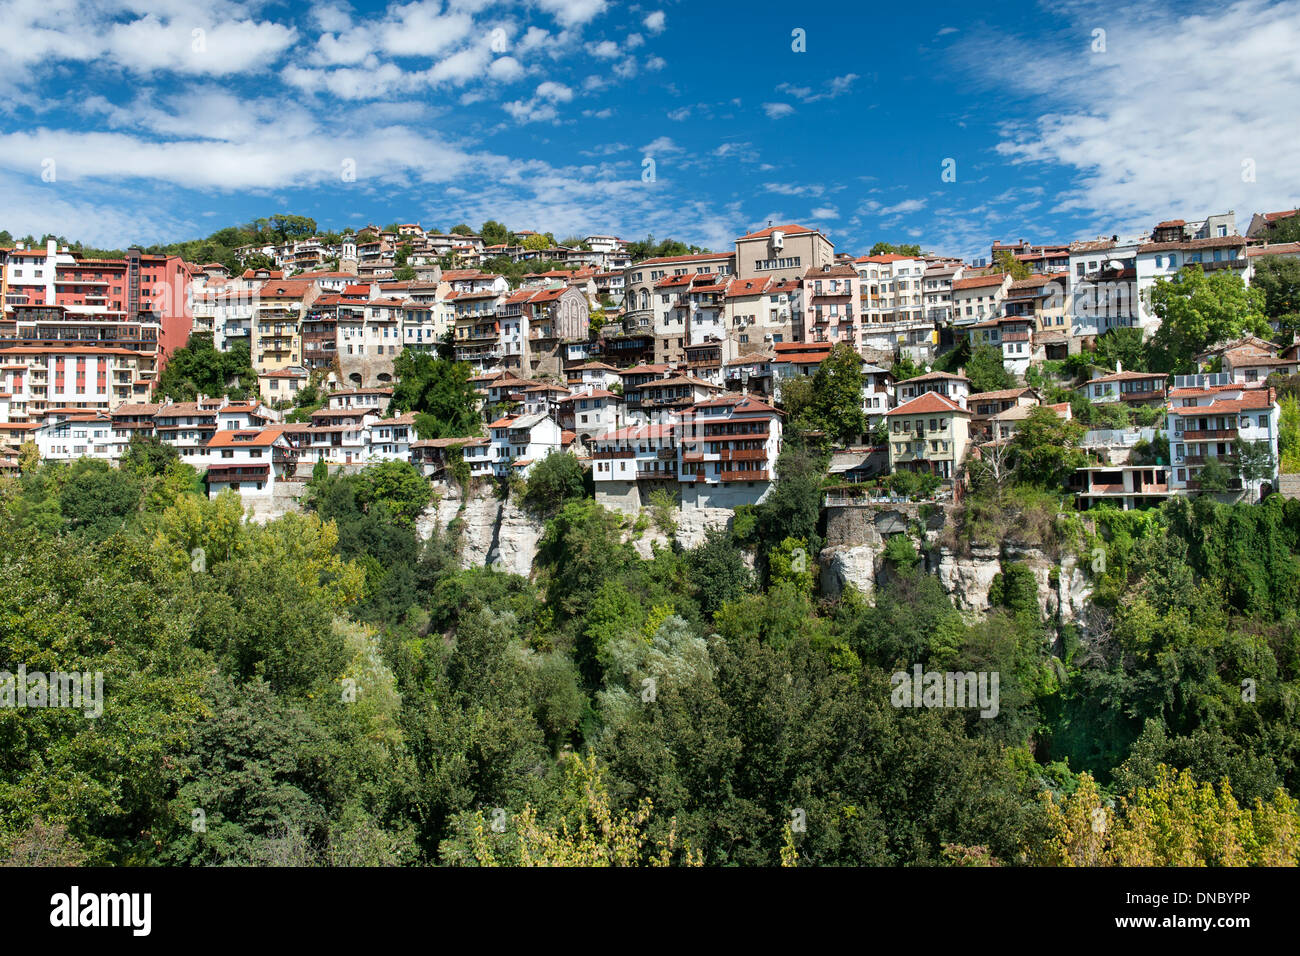 Houses on the hills of Veliko Tarnovo in Bulgaria. Stock Photo